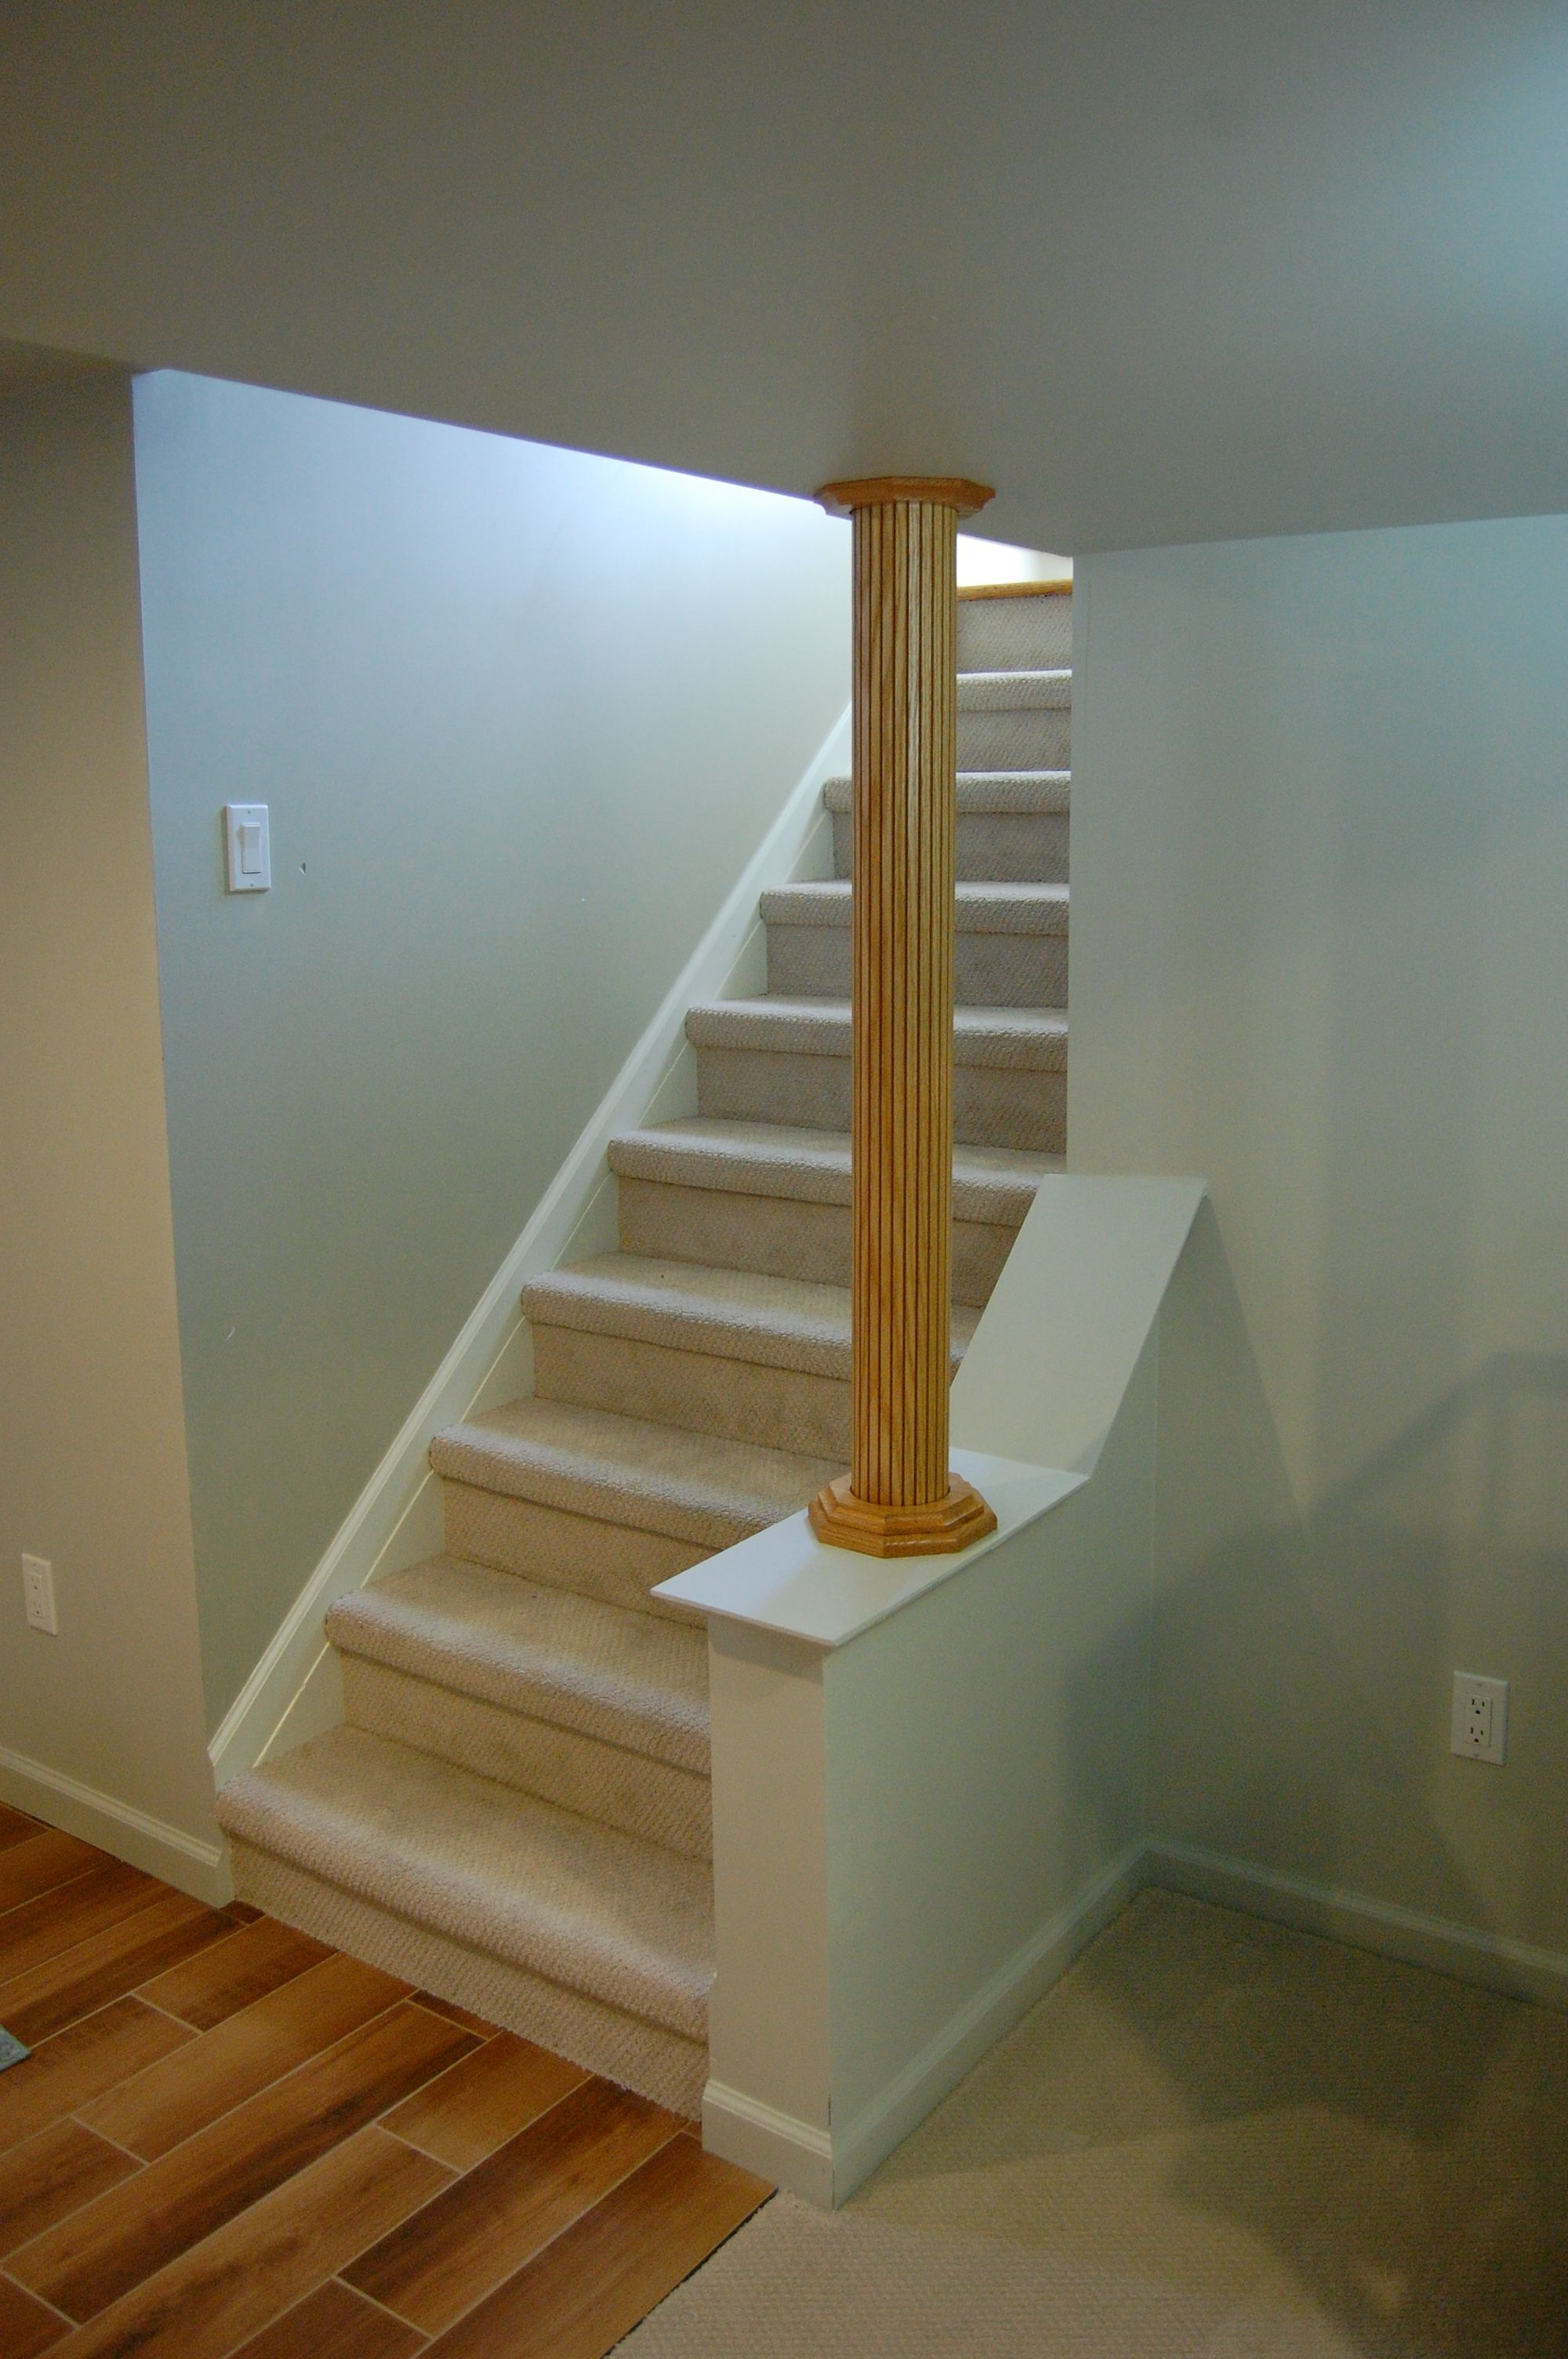 creative way to open your stairwell #stairinspiration